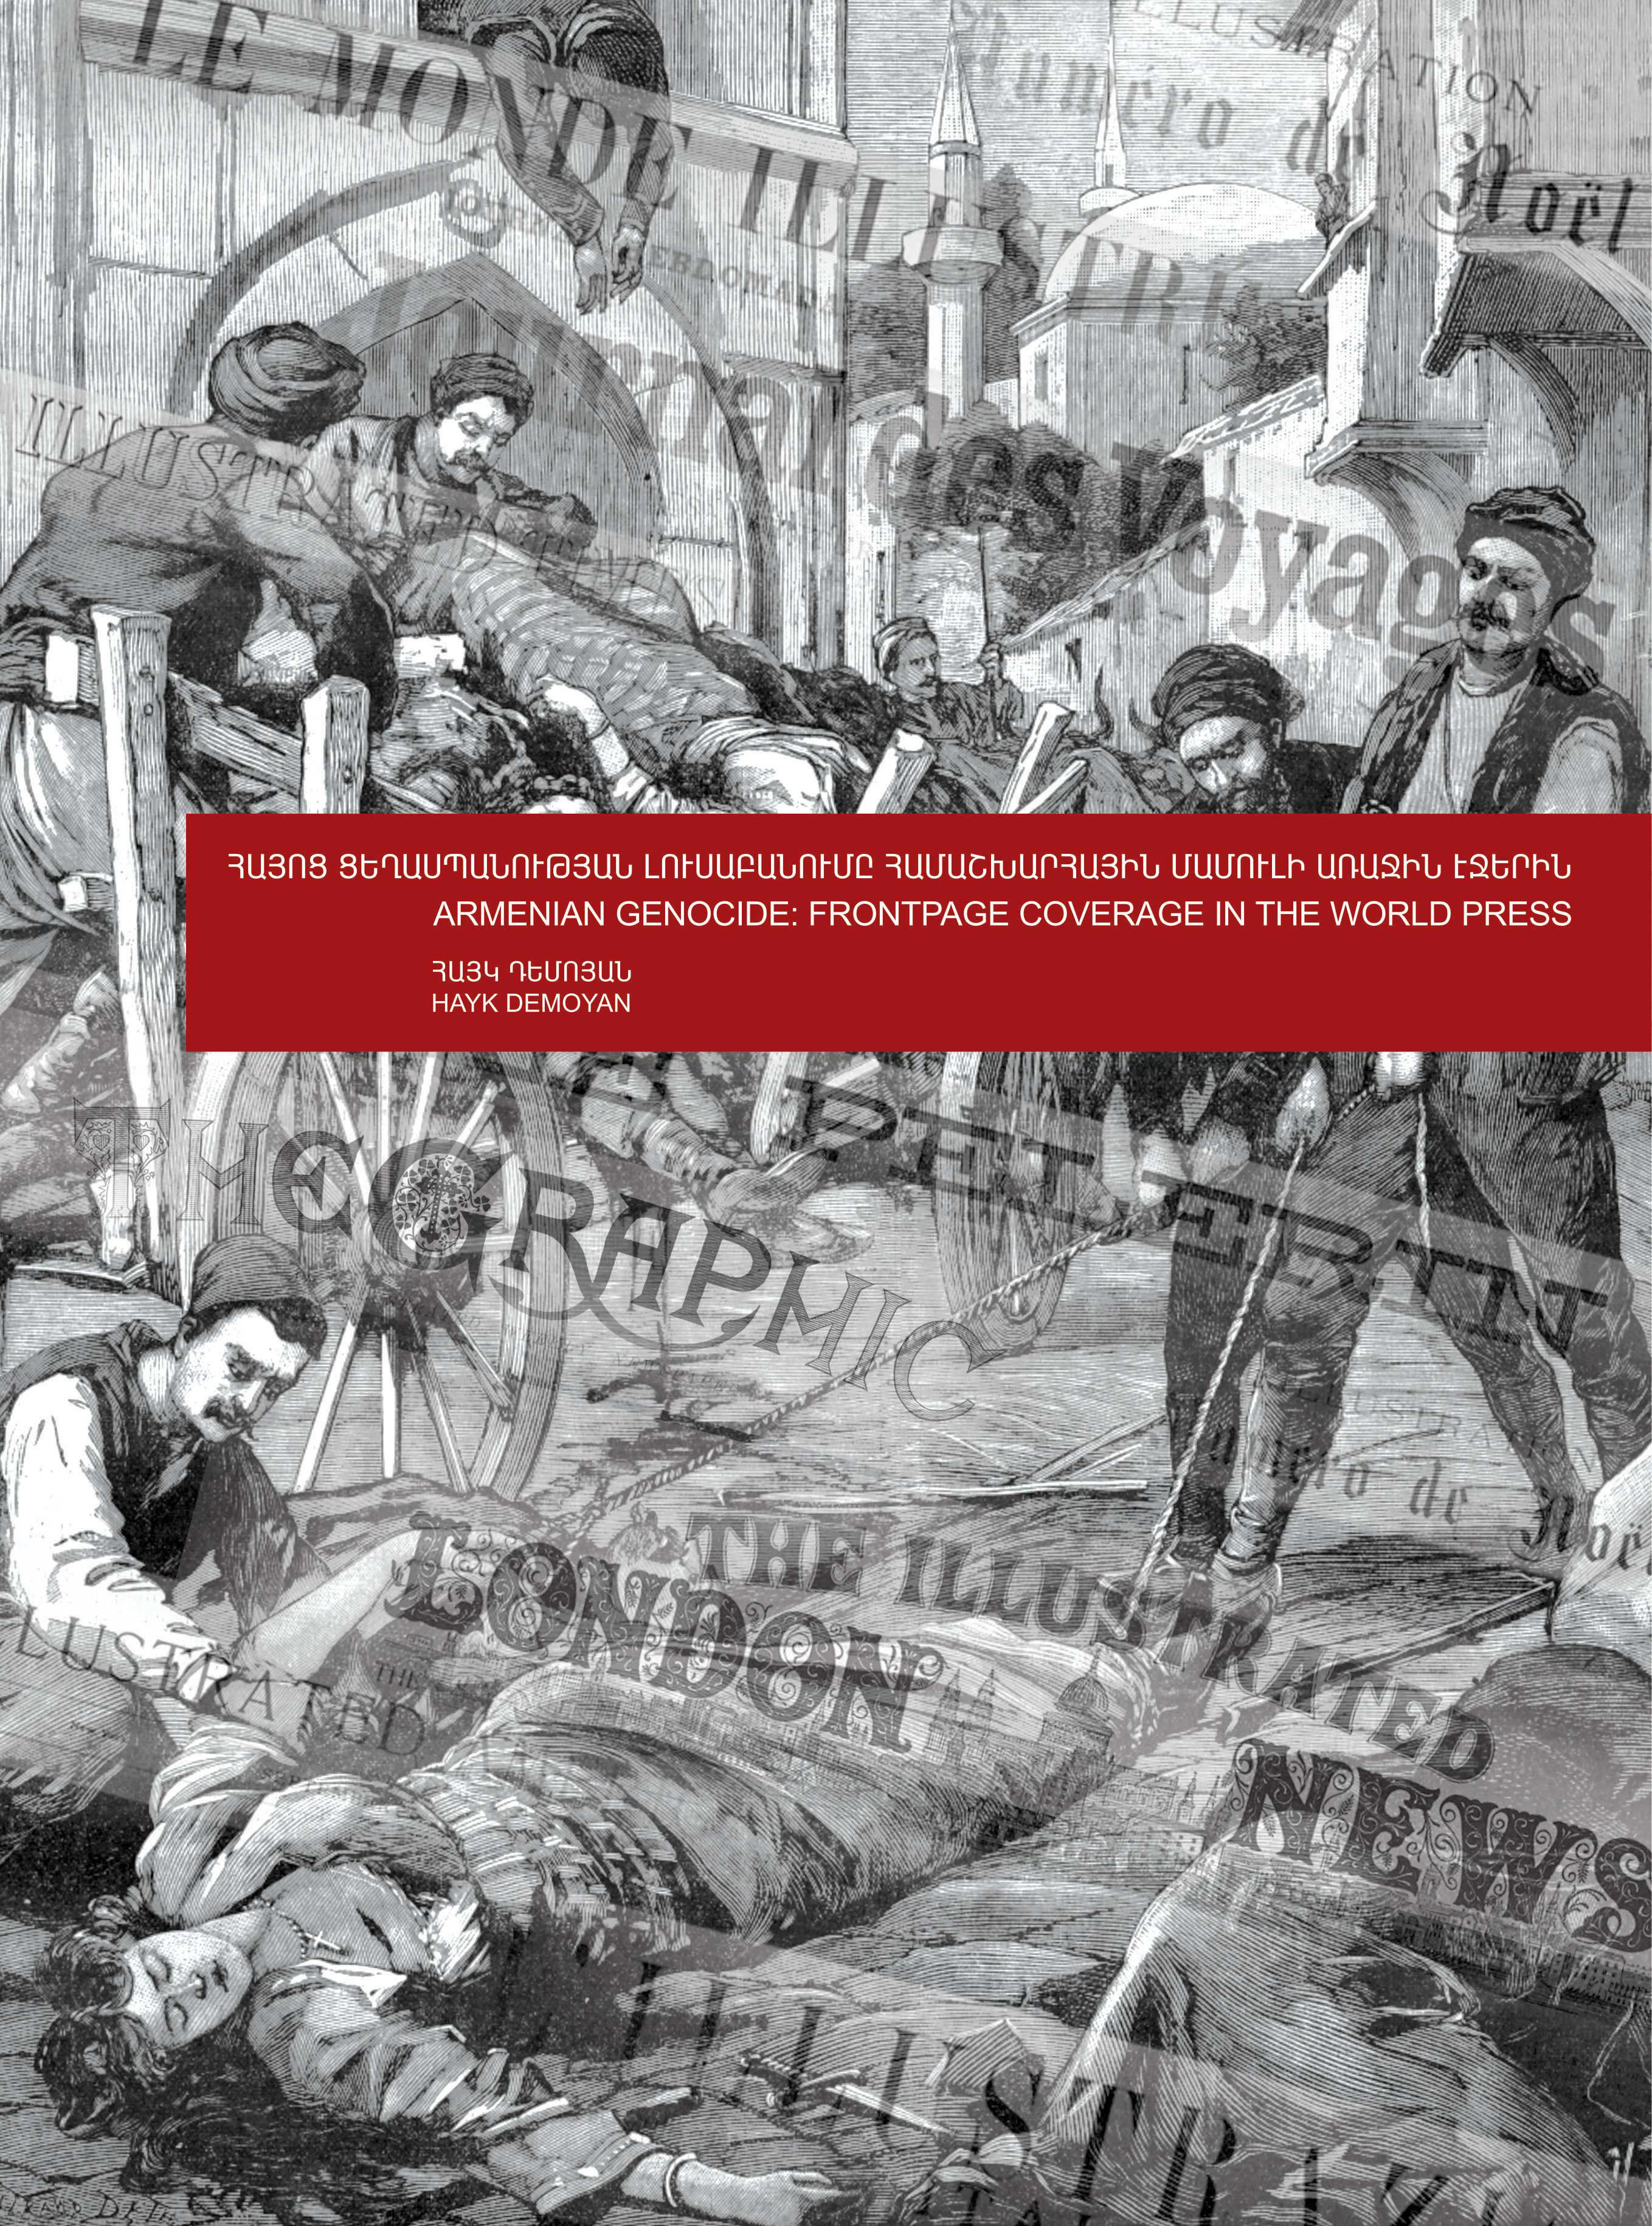 http://www.genocide-museum.am/arm/news-img/bookcover-16.10.2014.jpg